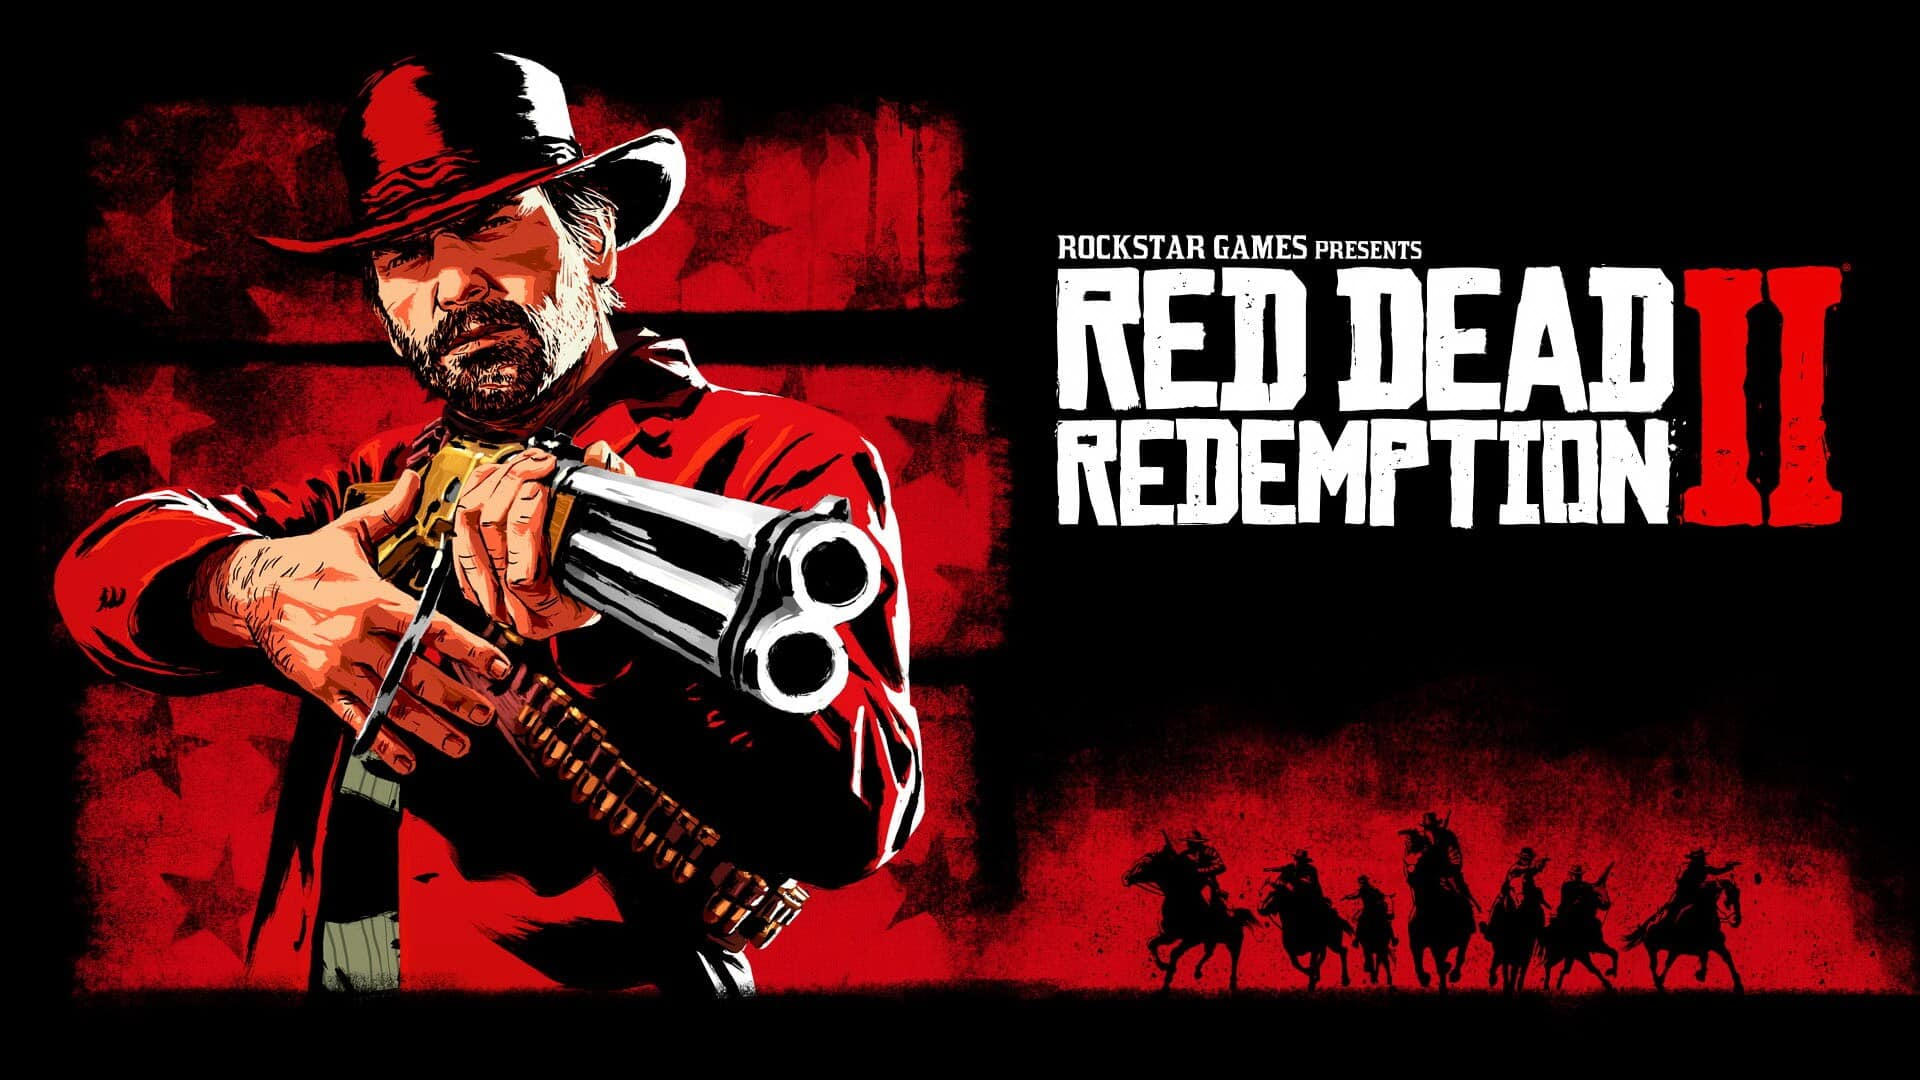 Red Dead Redemption 2 (PC) - Epic Game Store - $30.19 after Mega Sale 2020 Coupon (YMMV)